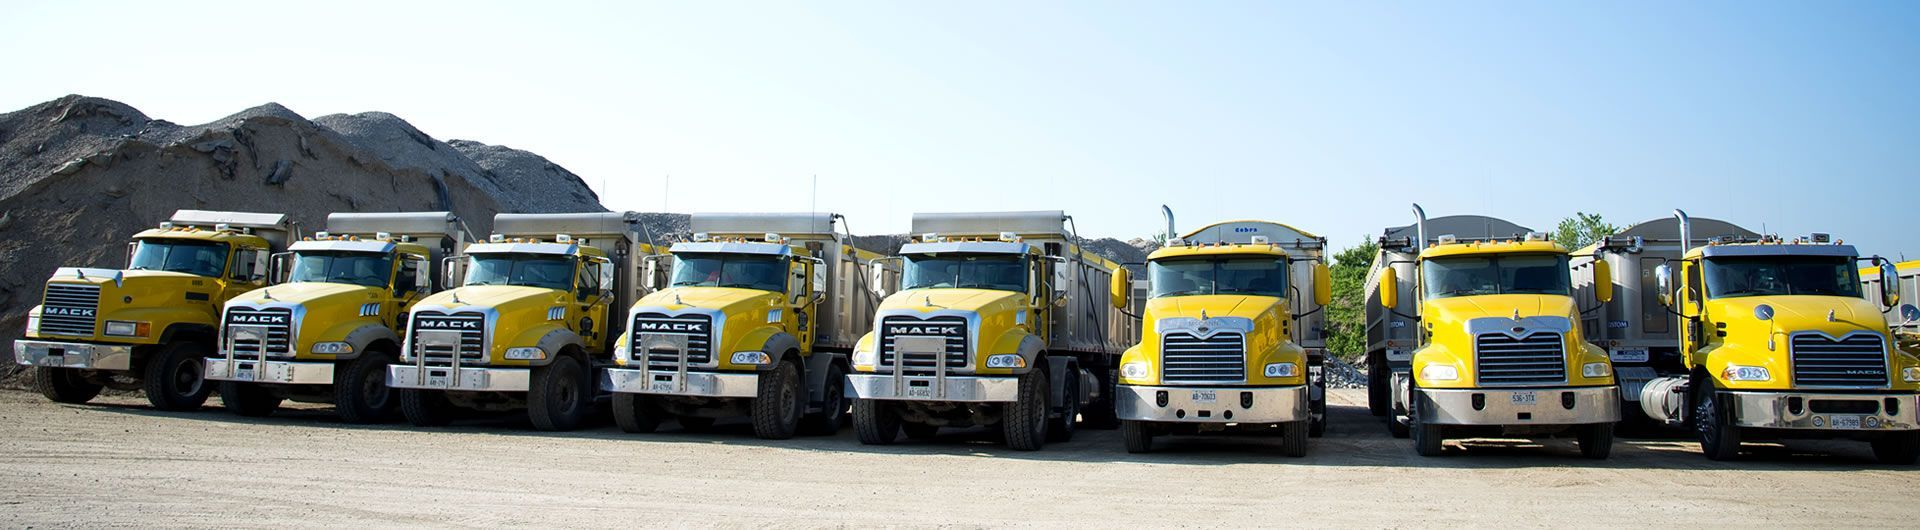 Truck Line-up front view